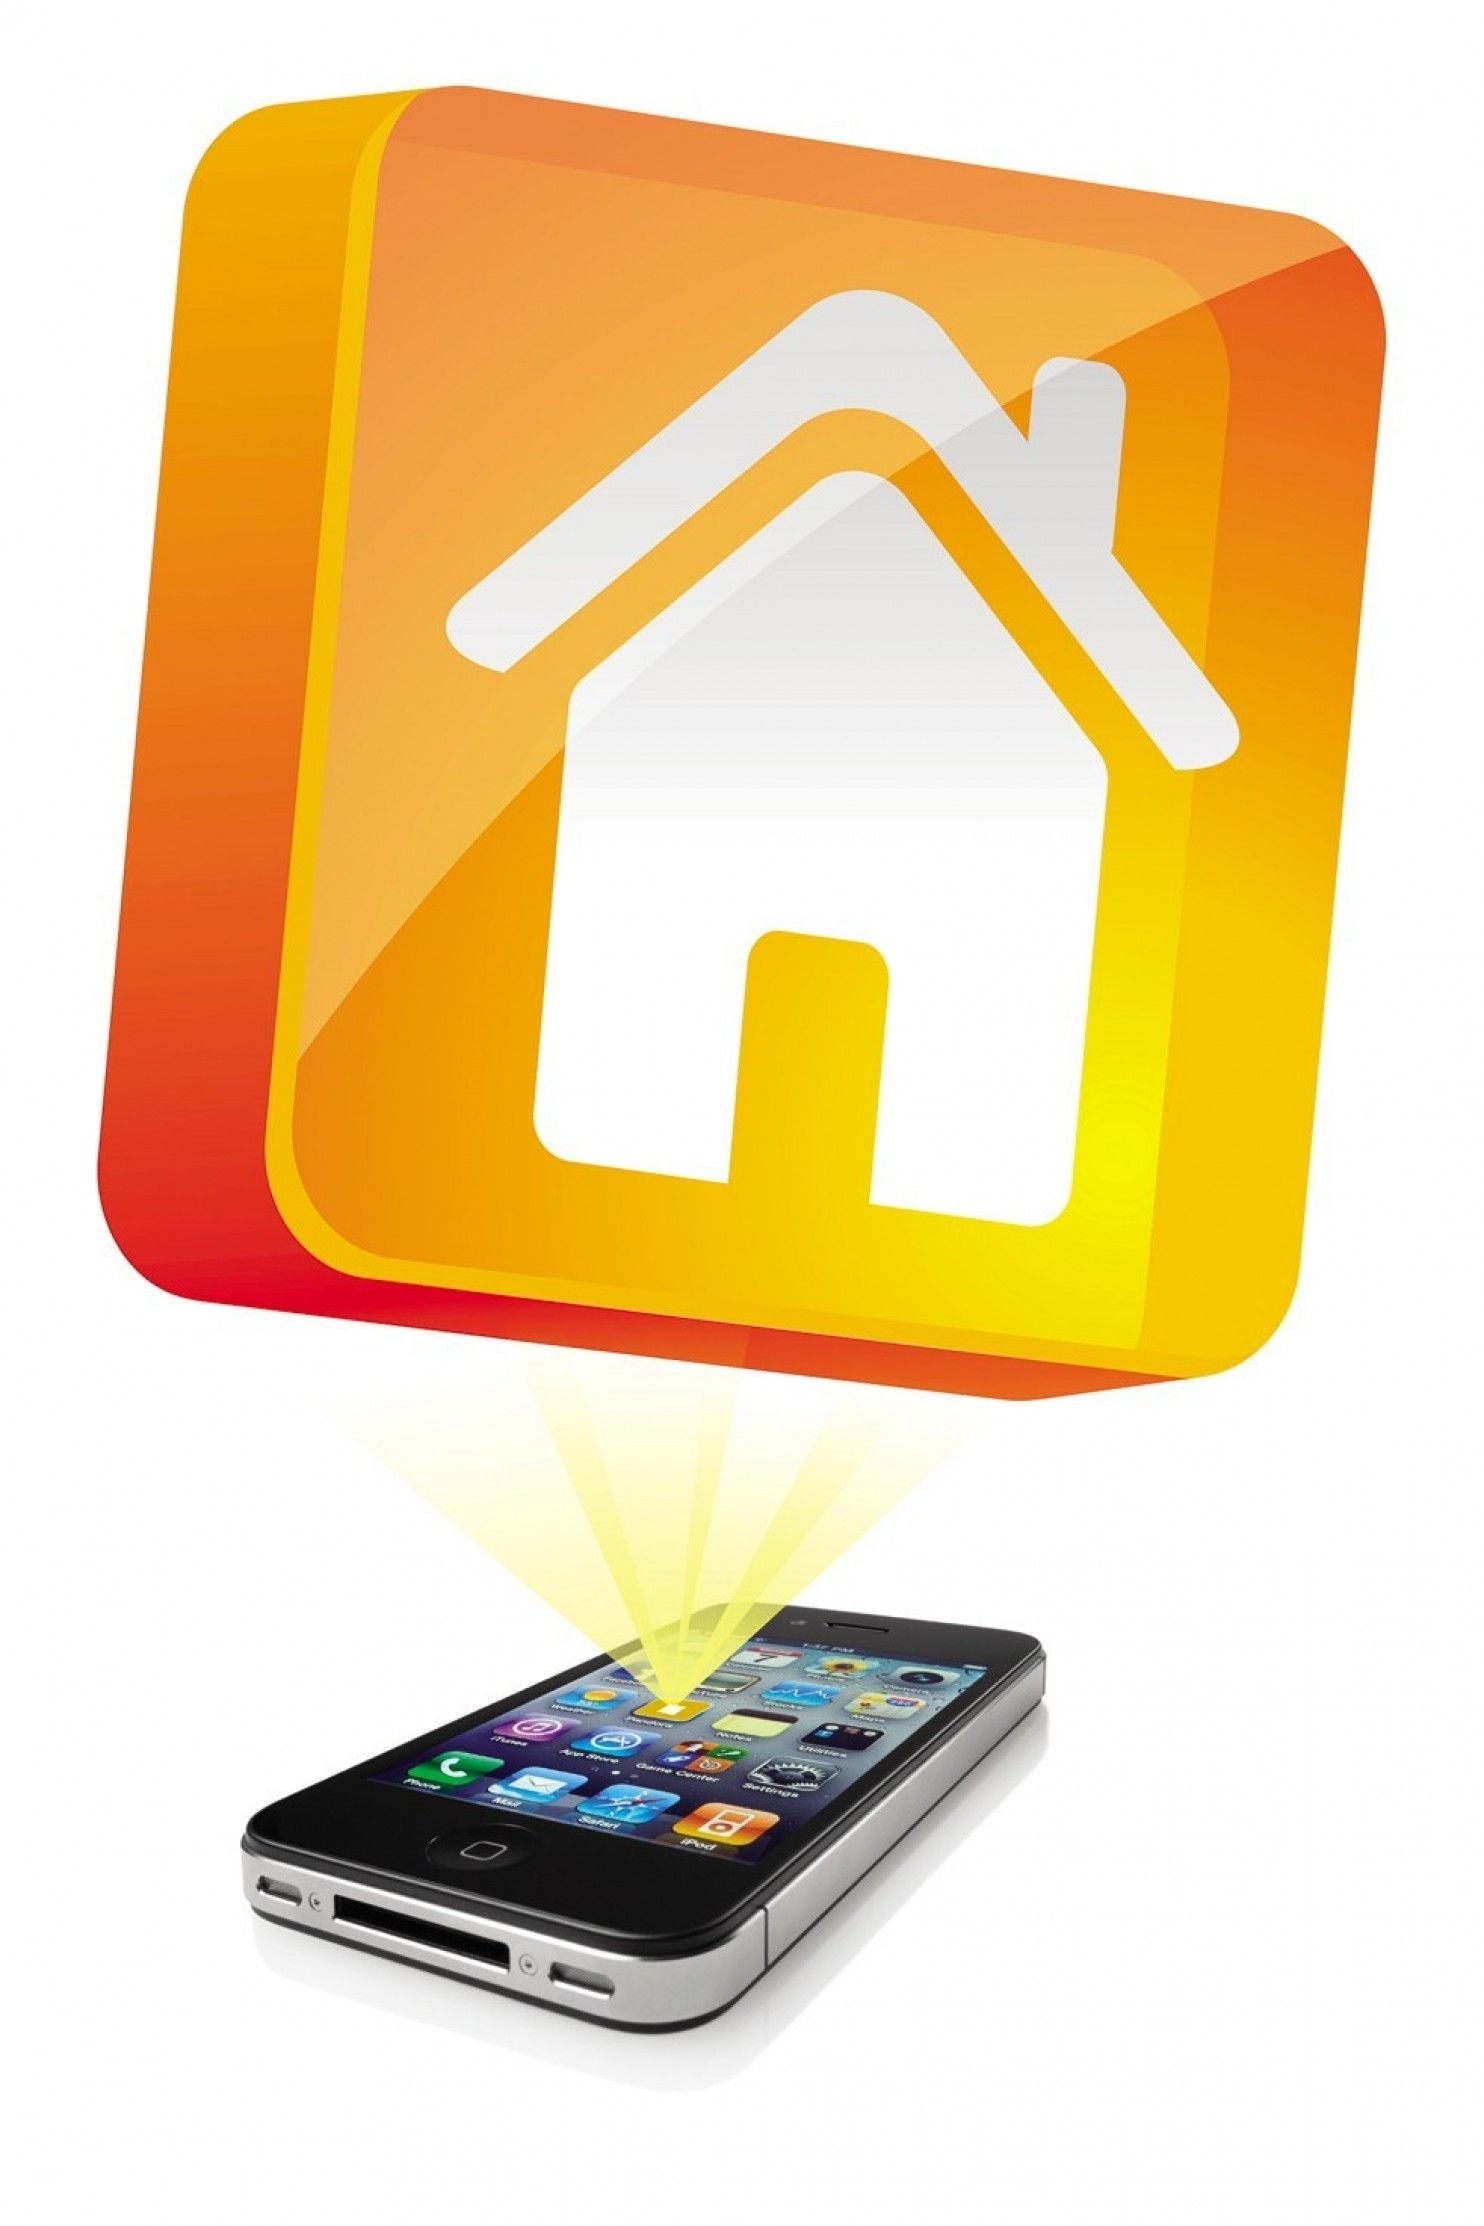 New real estate apps can help renters, buyers, sellers and